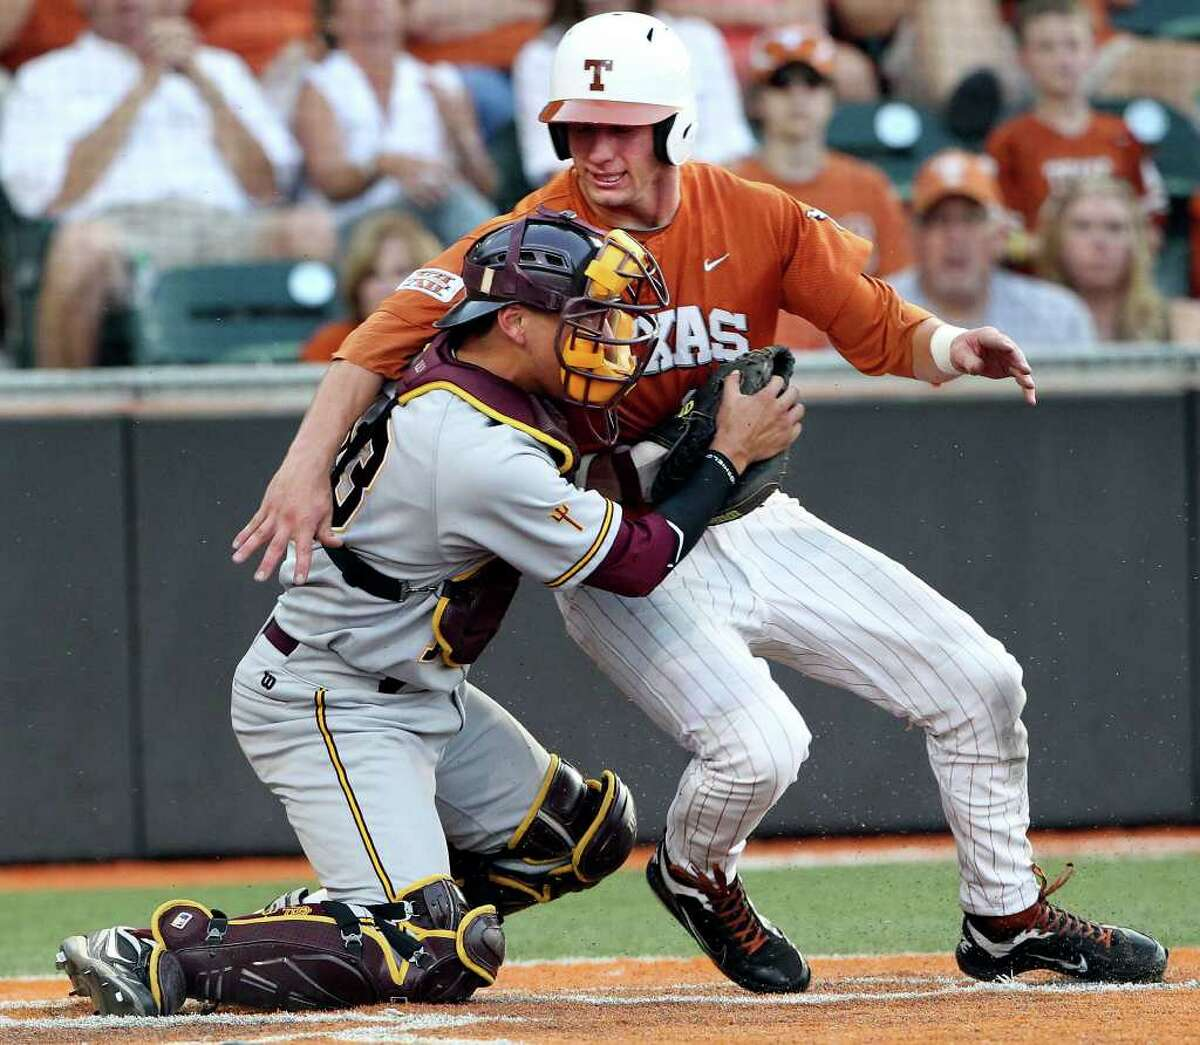 SPORTS Longhorn runner Jacob Felts is blocked from the plate by catcher Austin Barnes after being forced to try to take home in the seventh as The University of Texas Longhorns play Arizona State at Disch-Falk Field in Austin on June 10, 2011. Tom Reel/Staff